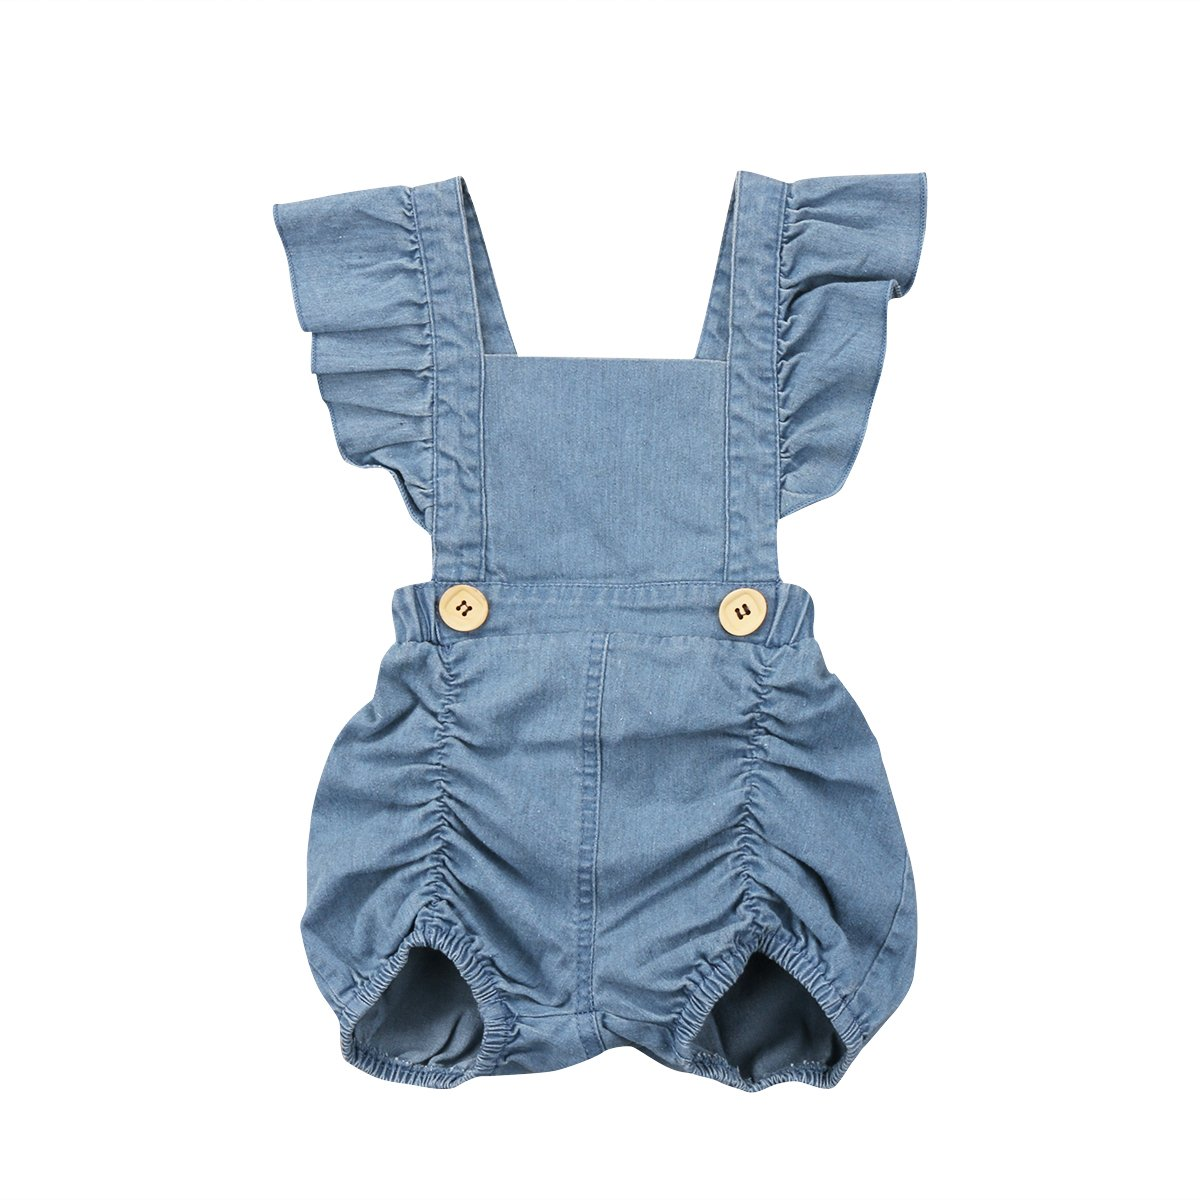 Calsunbaby Infant Baby Girls One Piece Short Sleeve Ripped Demin Jeans Ruffle Romper Sunsuit Outfits Jumpsuit (Blue, 6-12 Months)